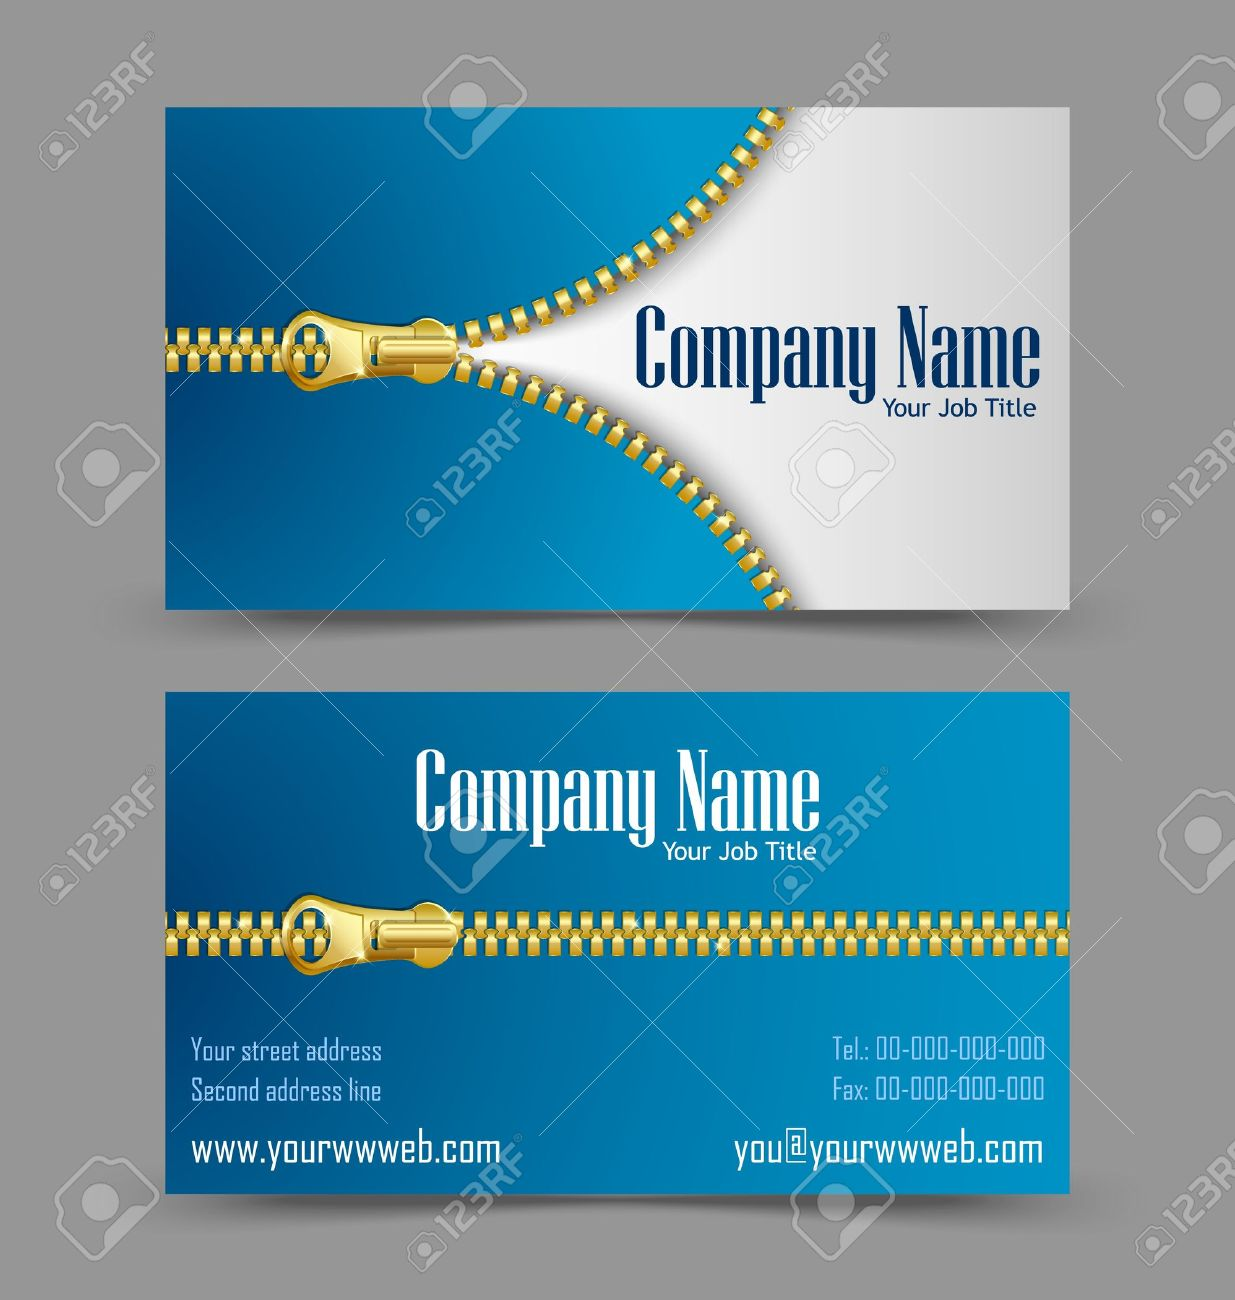 Business card backs images free business cards front and back side of zipper theme business card isolated on front and back side of magicingreecefo Image collections